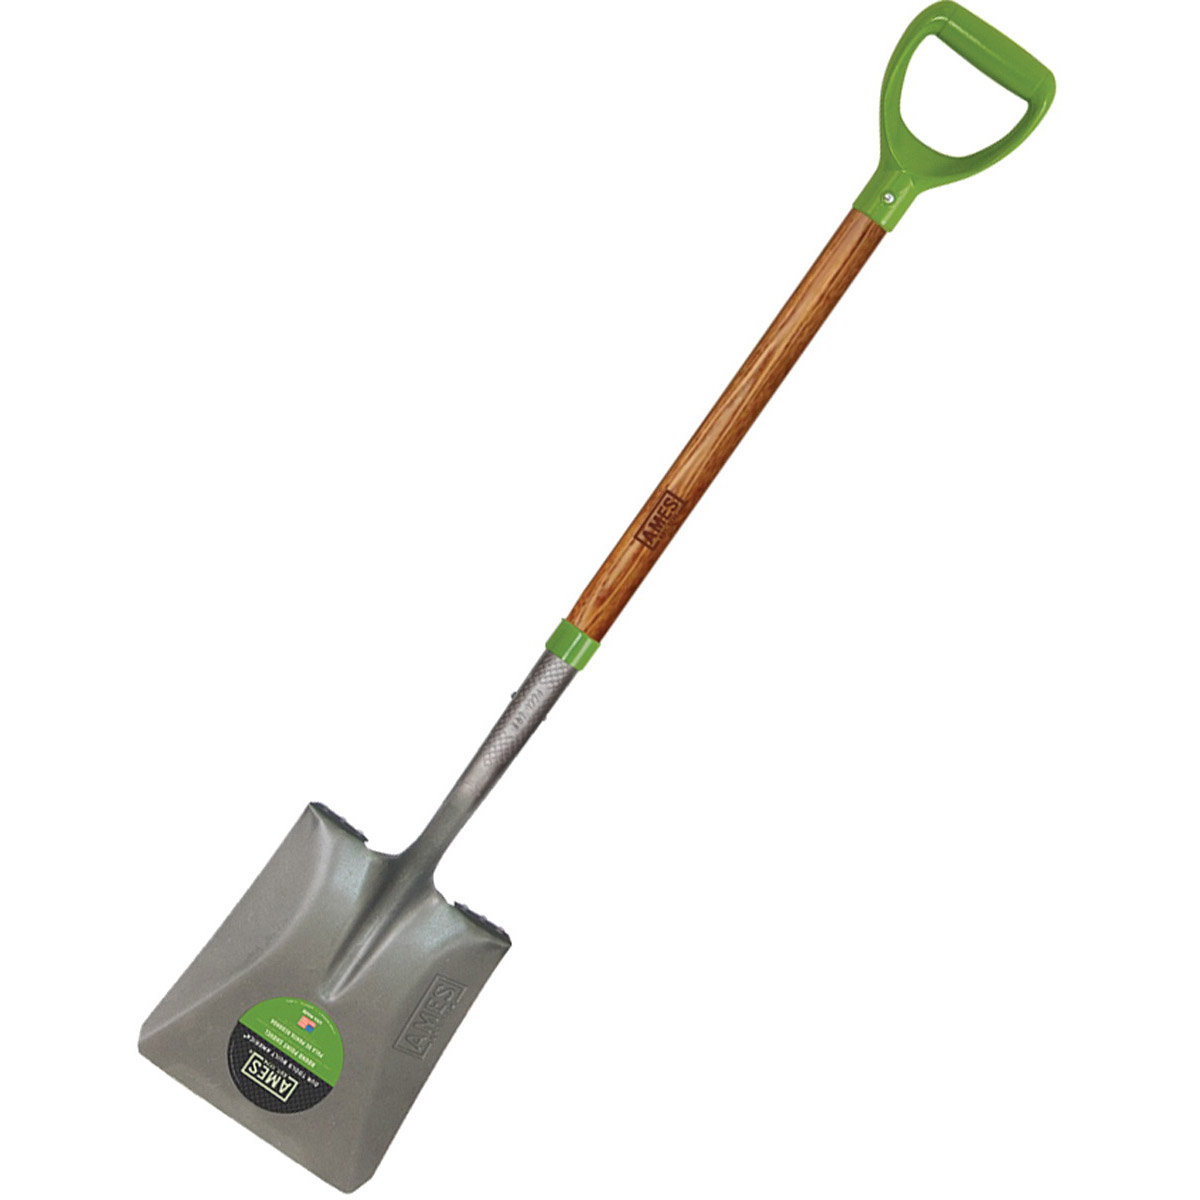 Picture of AMES 2535900 Transfer Shovel, 9-3/4 in W Blade, Steel Blade, North American Hardwood Handle, D-Shaped Handle